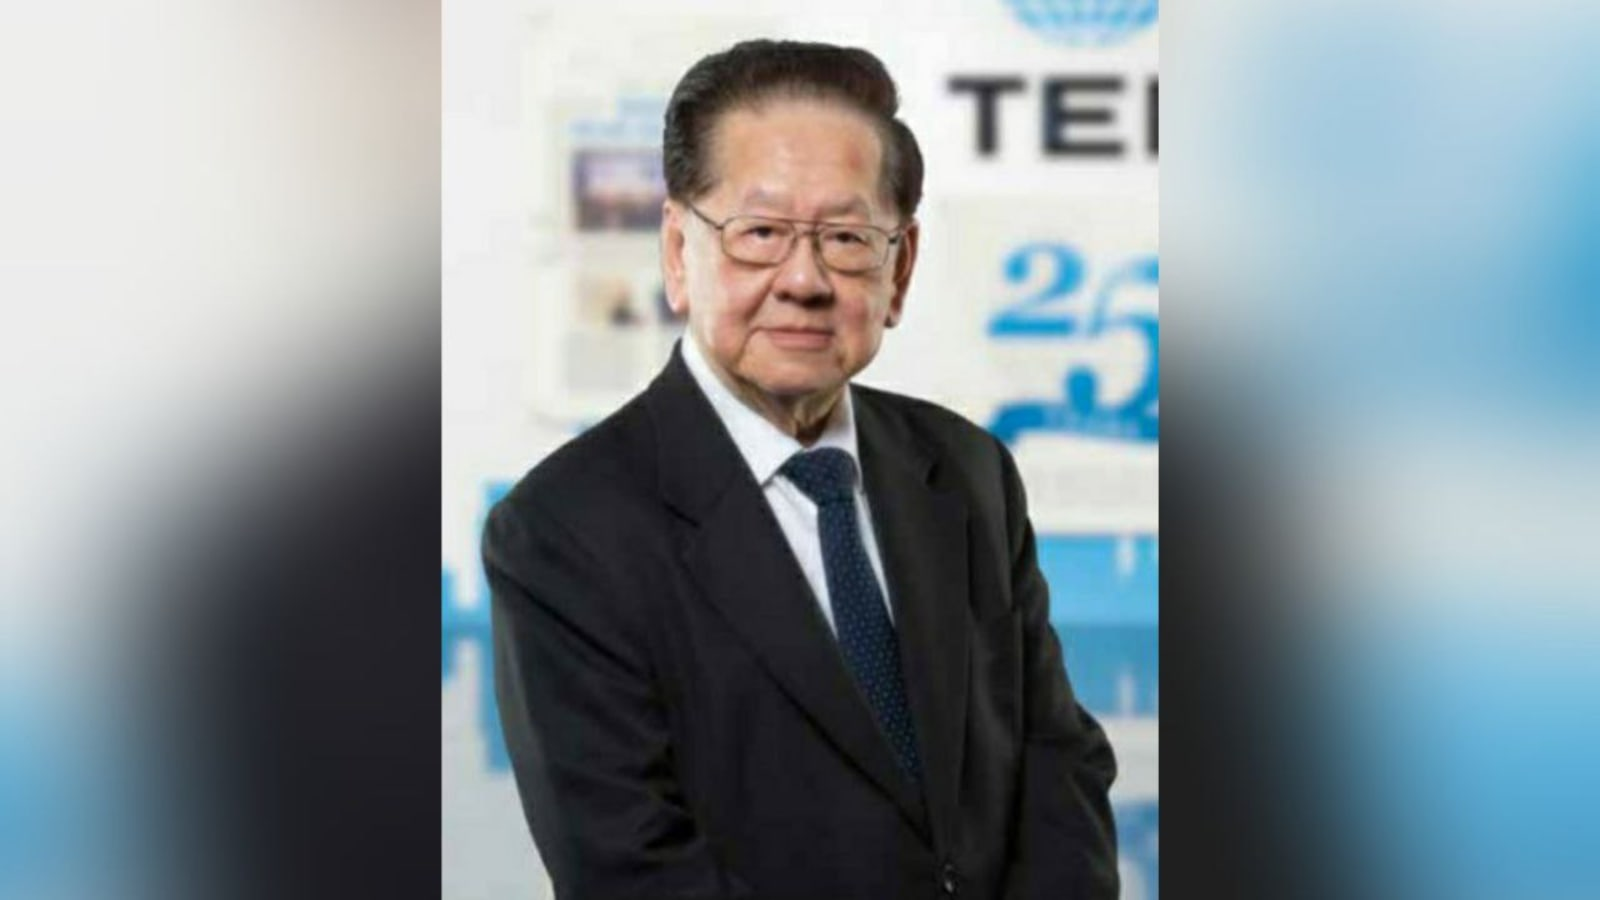 Former POSB CEO Bertie Cheng dies from COVID-19; son urges unvaccinated elderly to get their jabs: Report